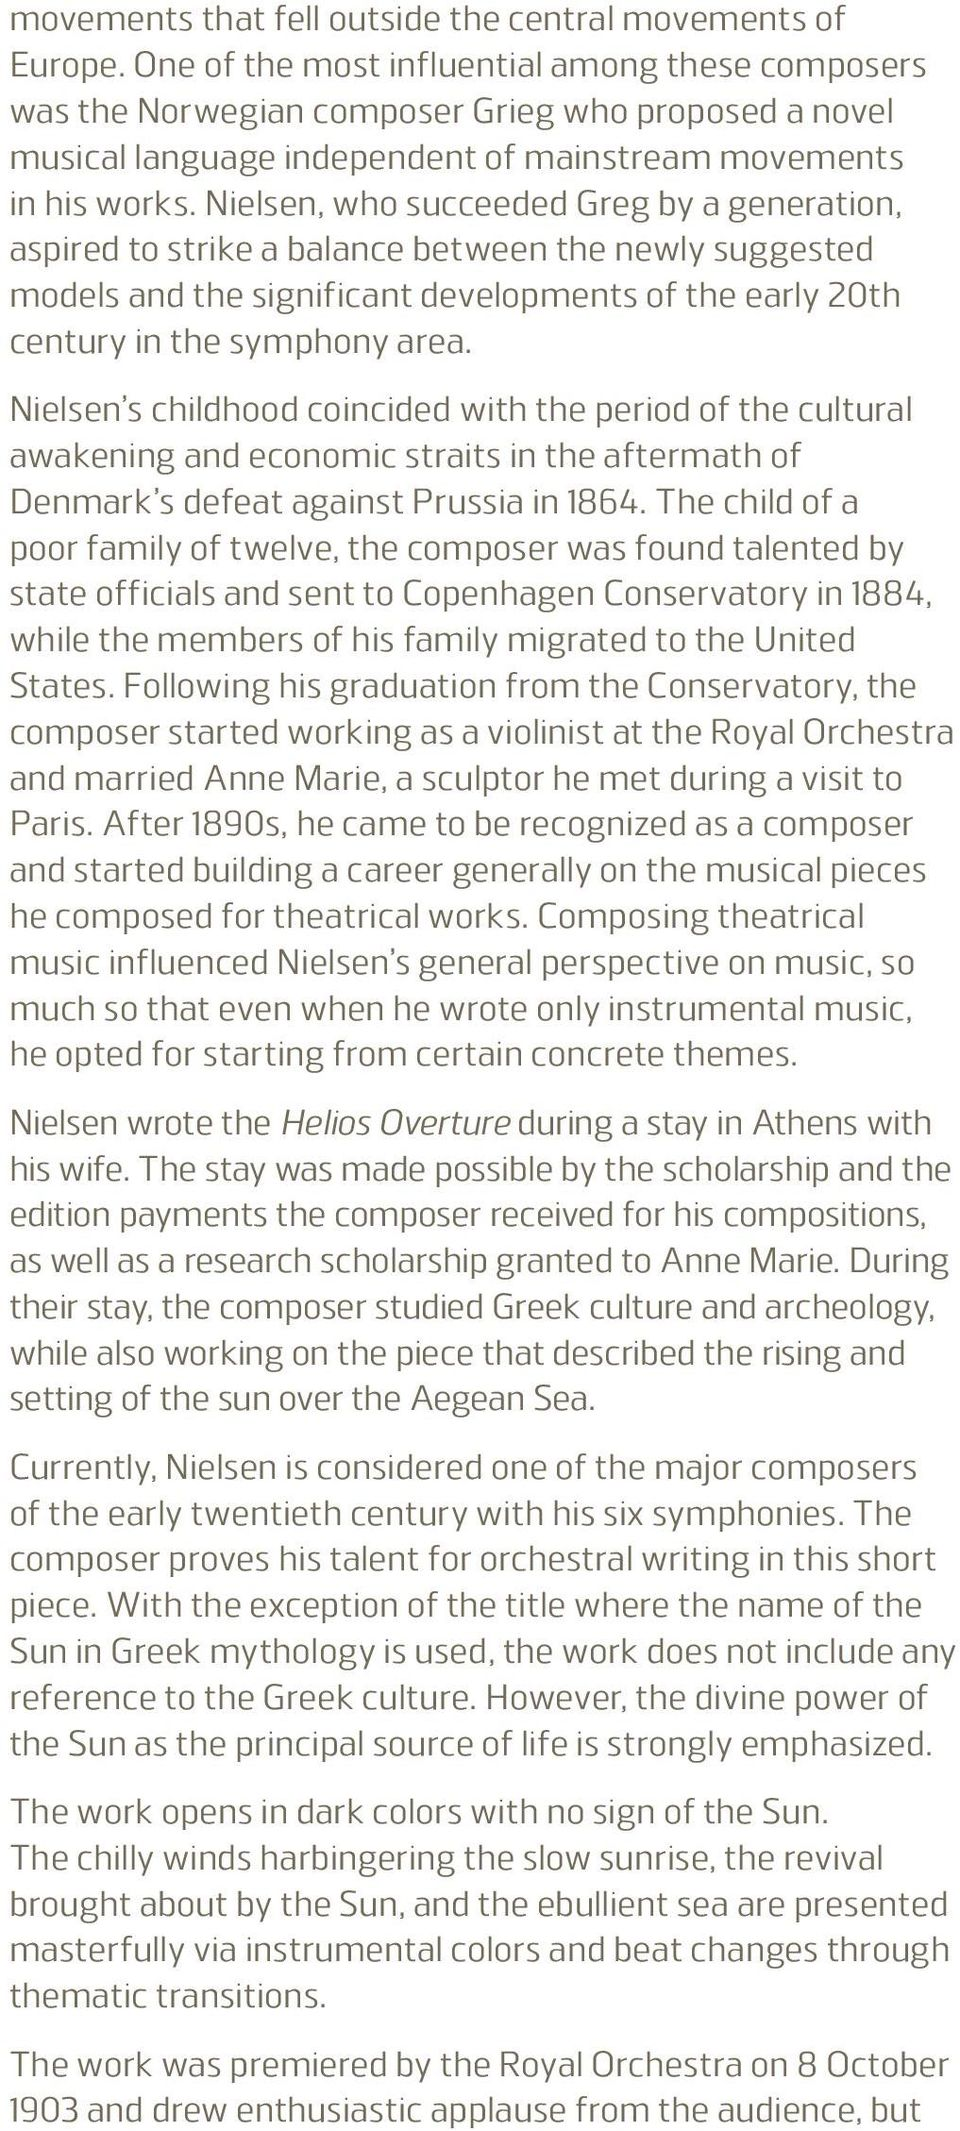 Nielsen, who succeeded Greg by a generation, aspired to strike a balance between the newly suggested models and the significant developments of the early 20th century in the symphony area.